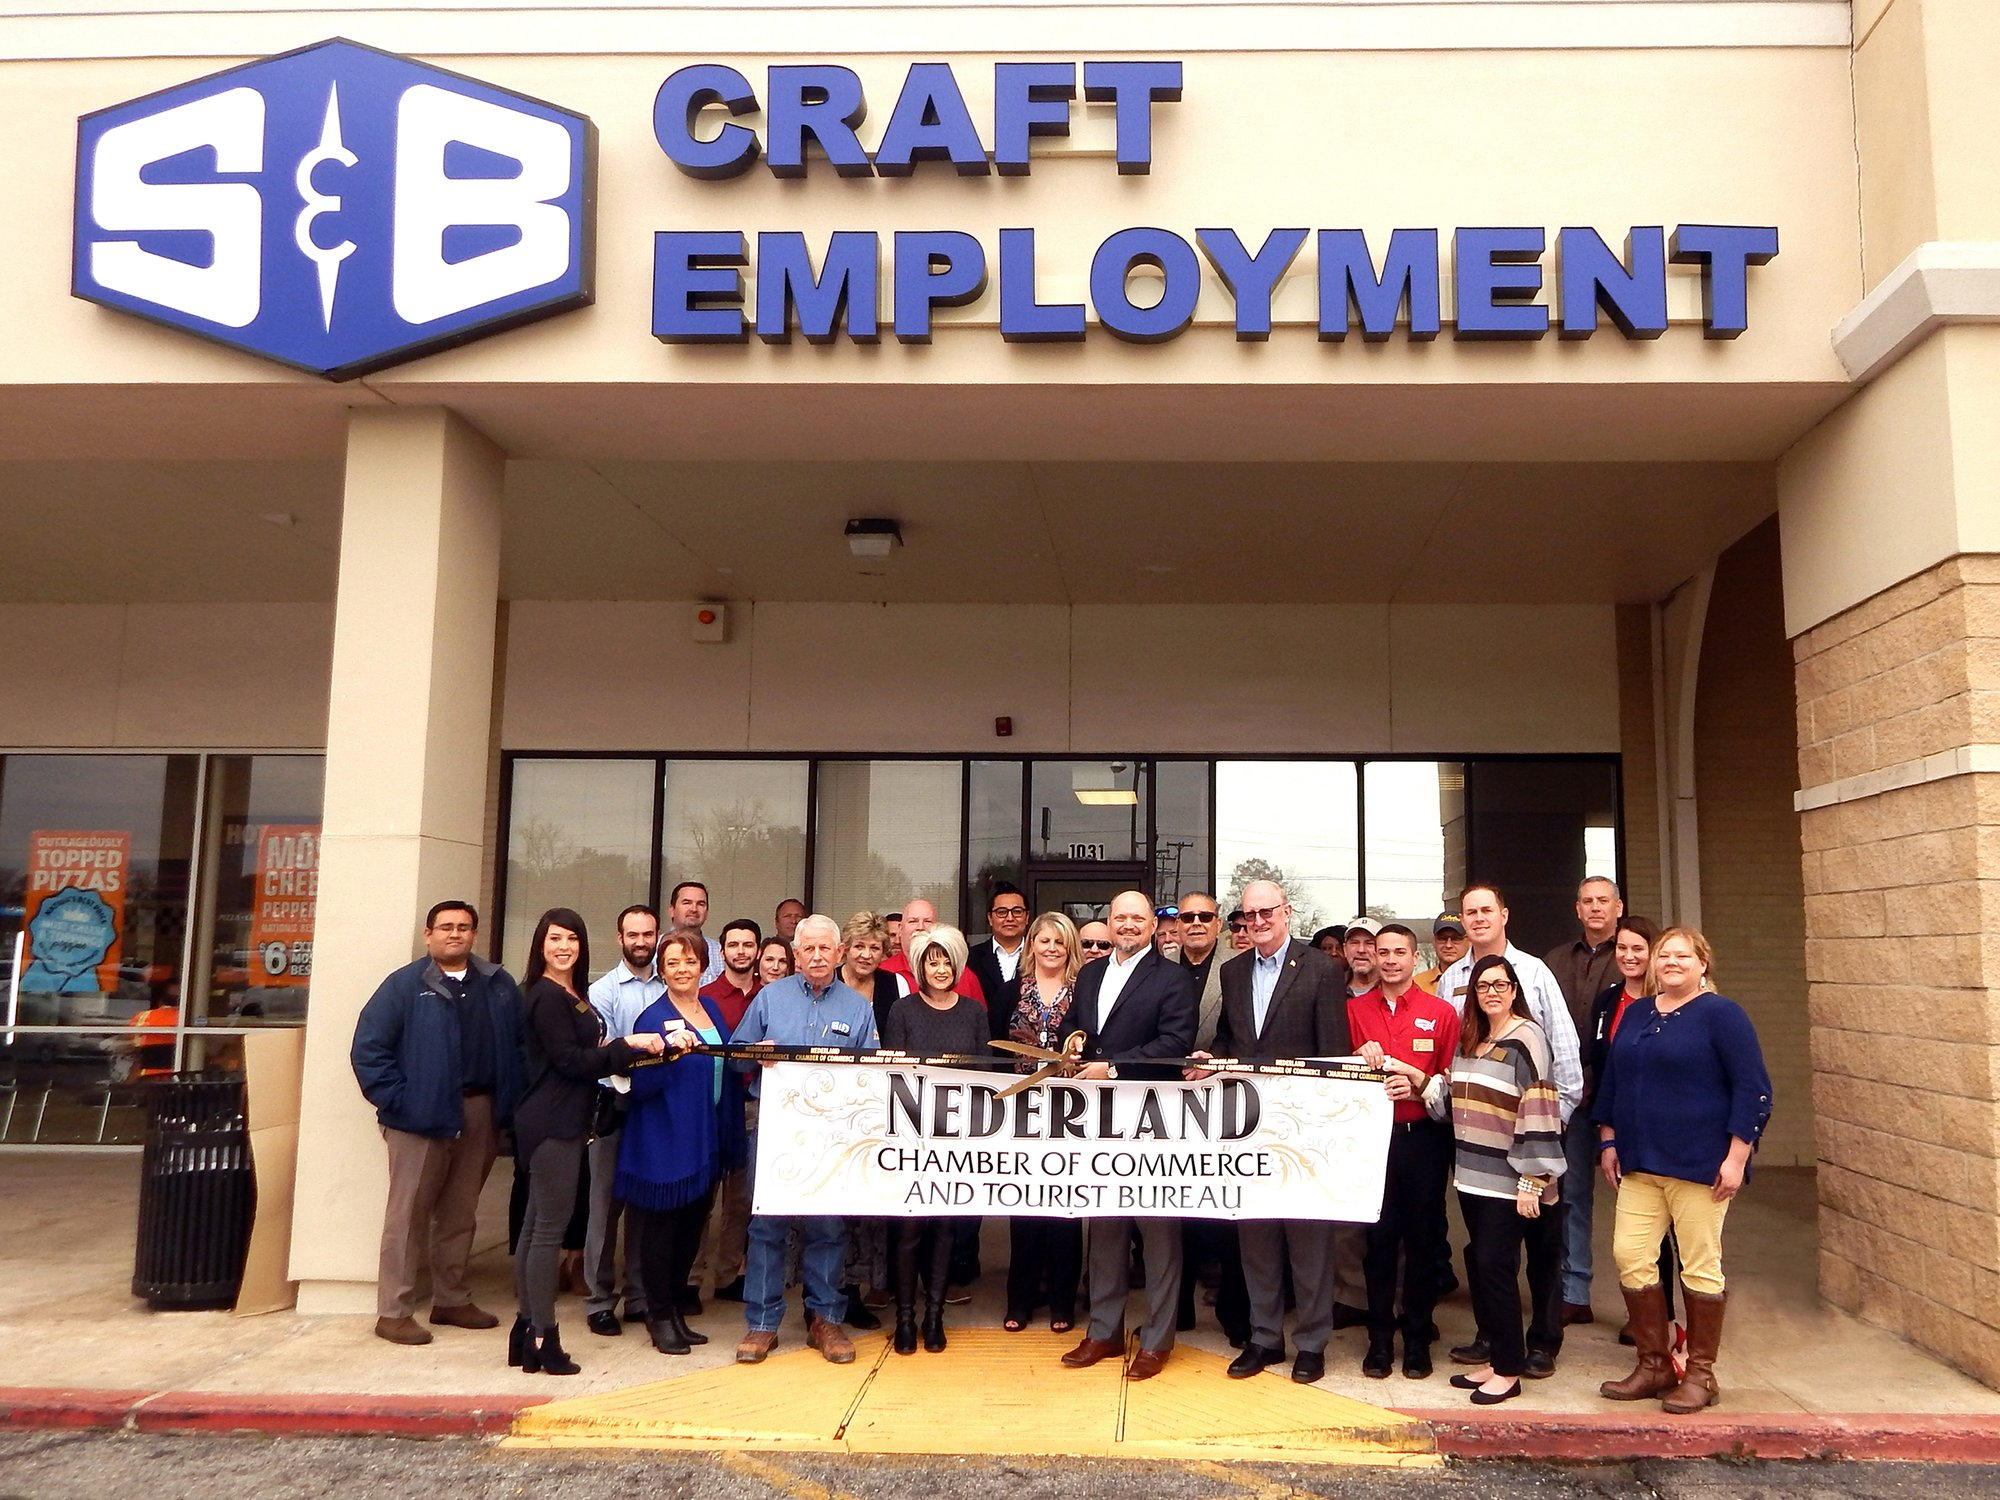 S b opens nederland craft hiring office to support construction